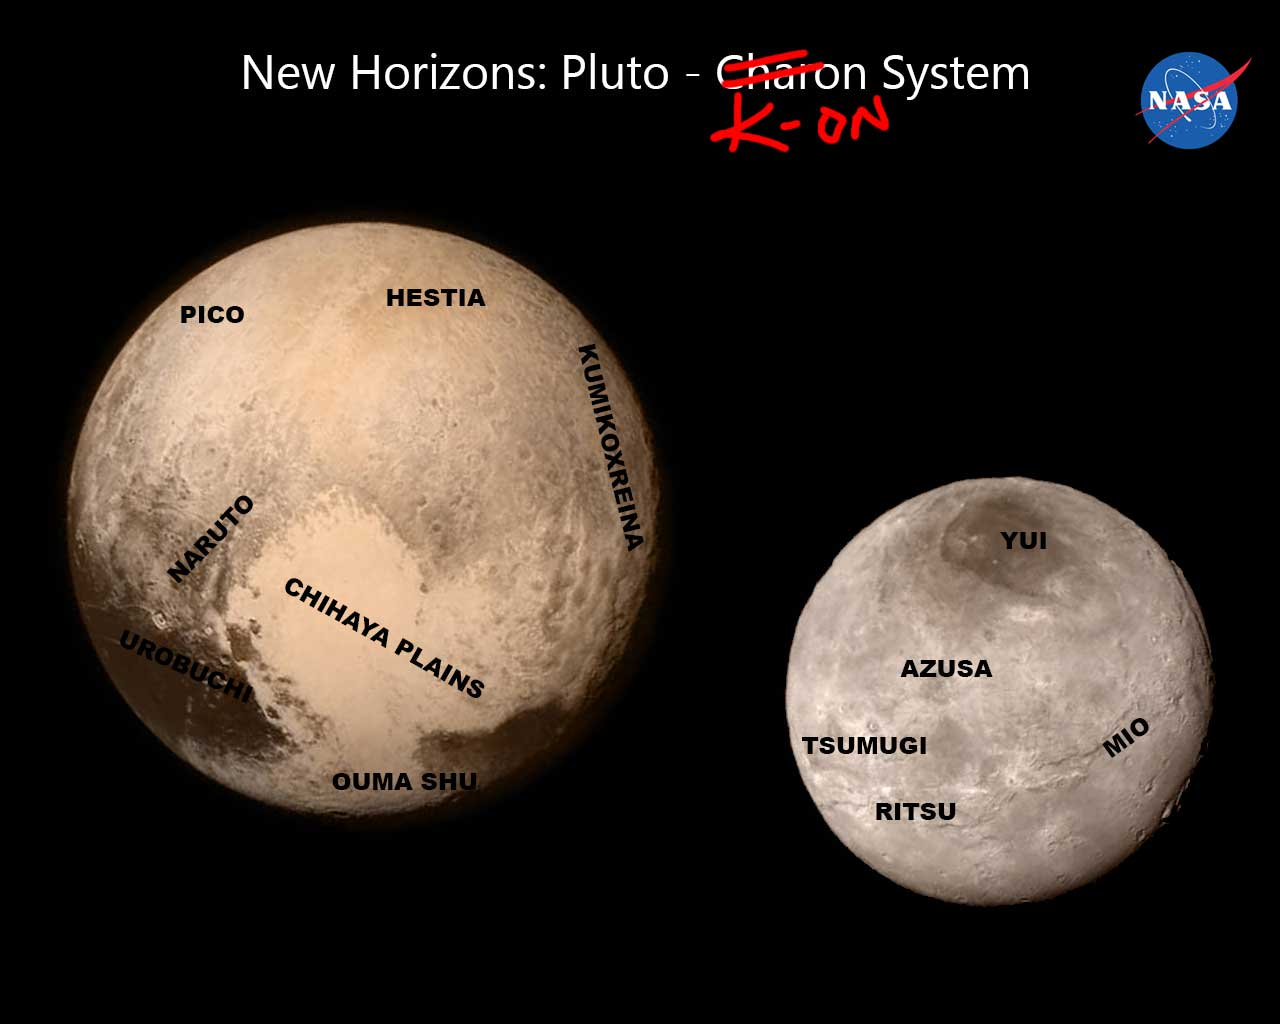 op ed please stop recommending weeb names for features on pluto